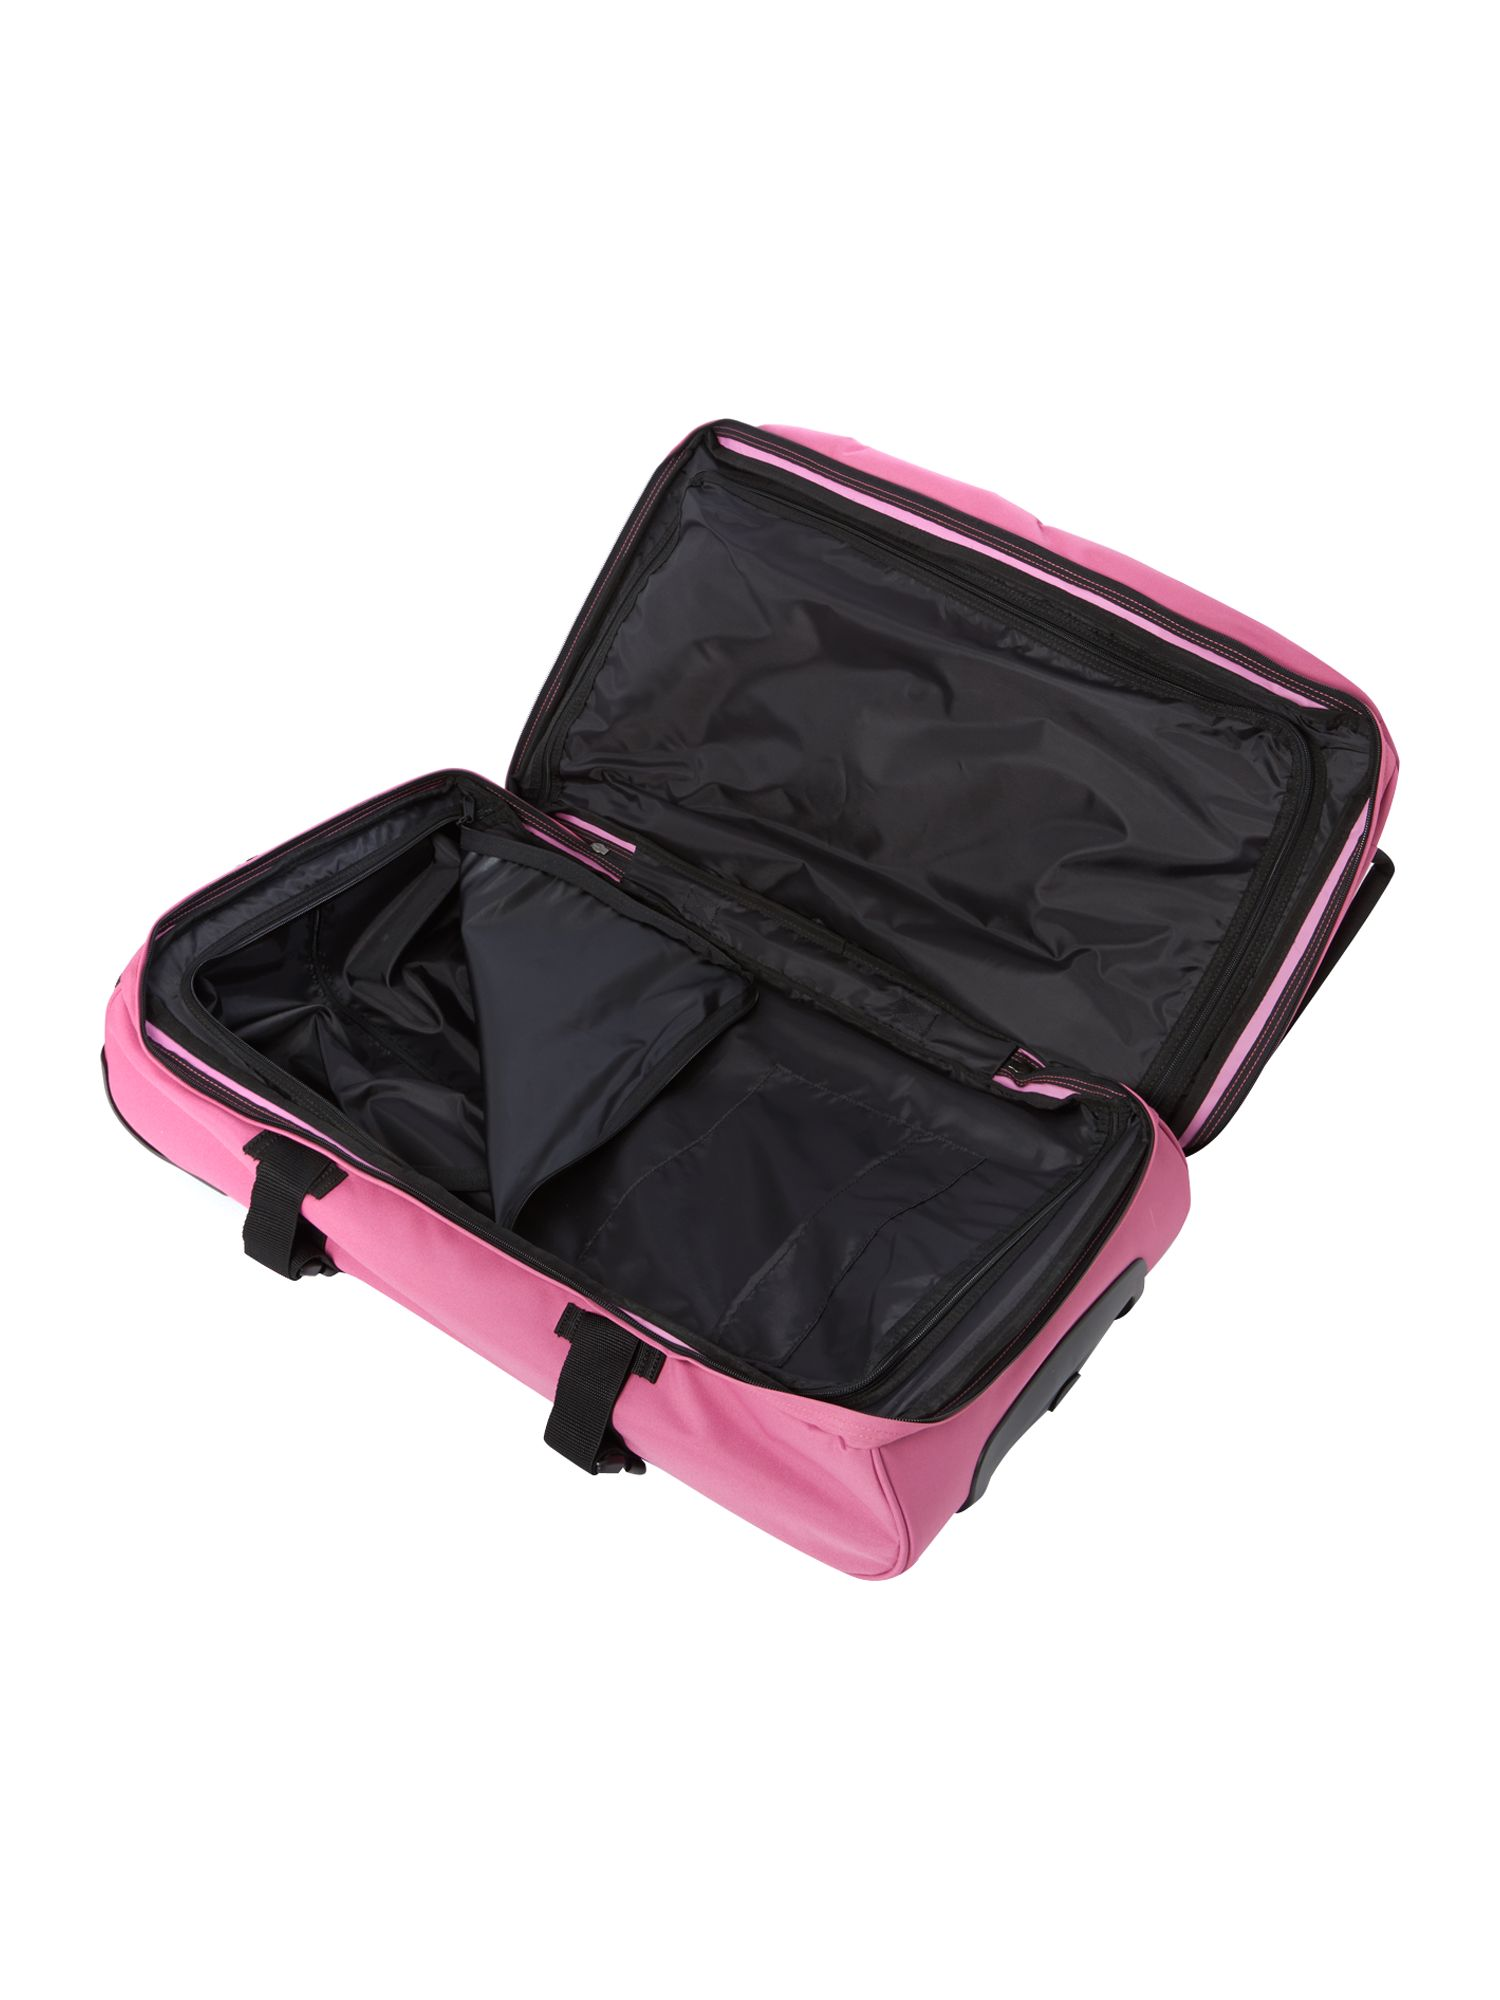 Transvers pink large trolley duffle